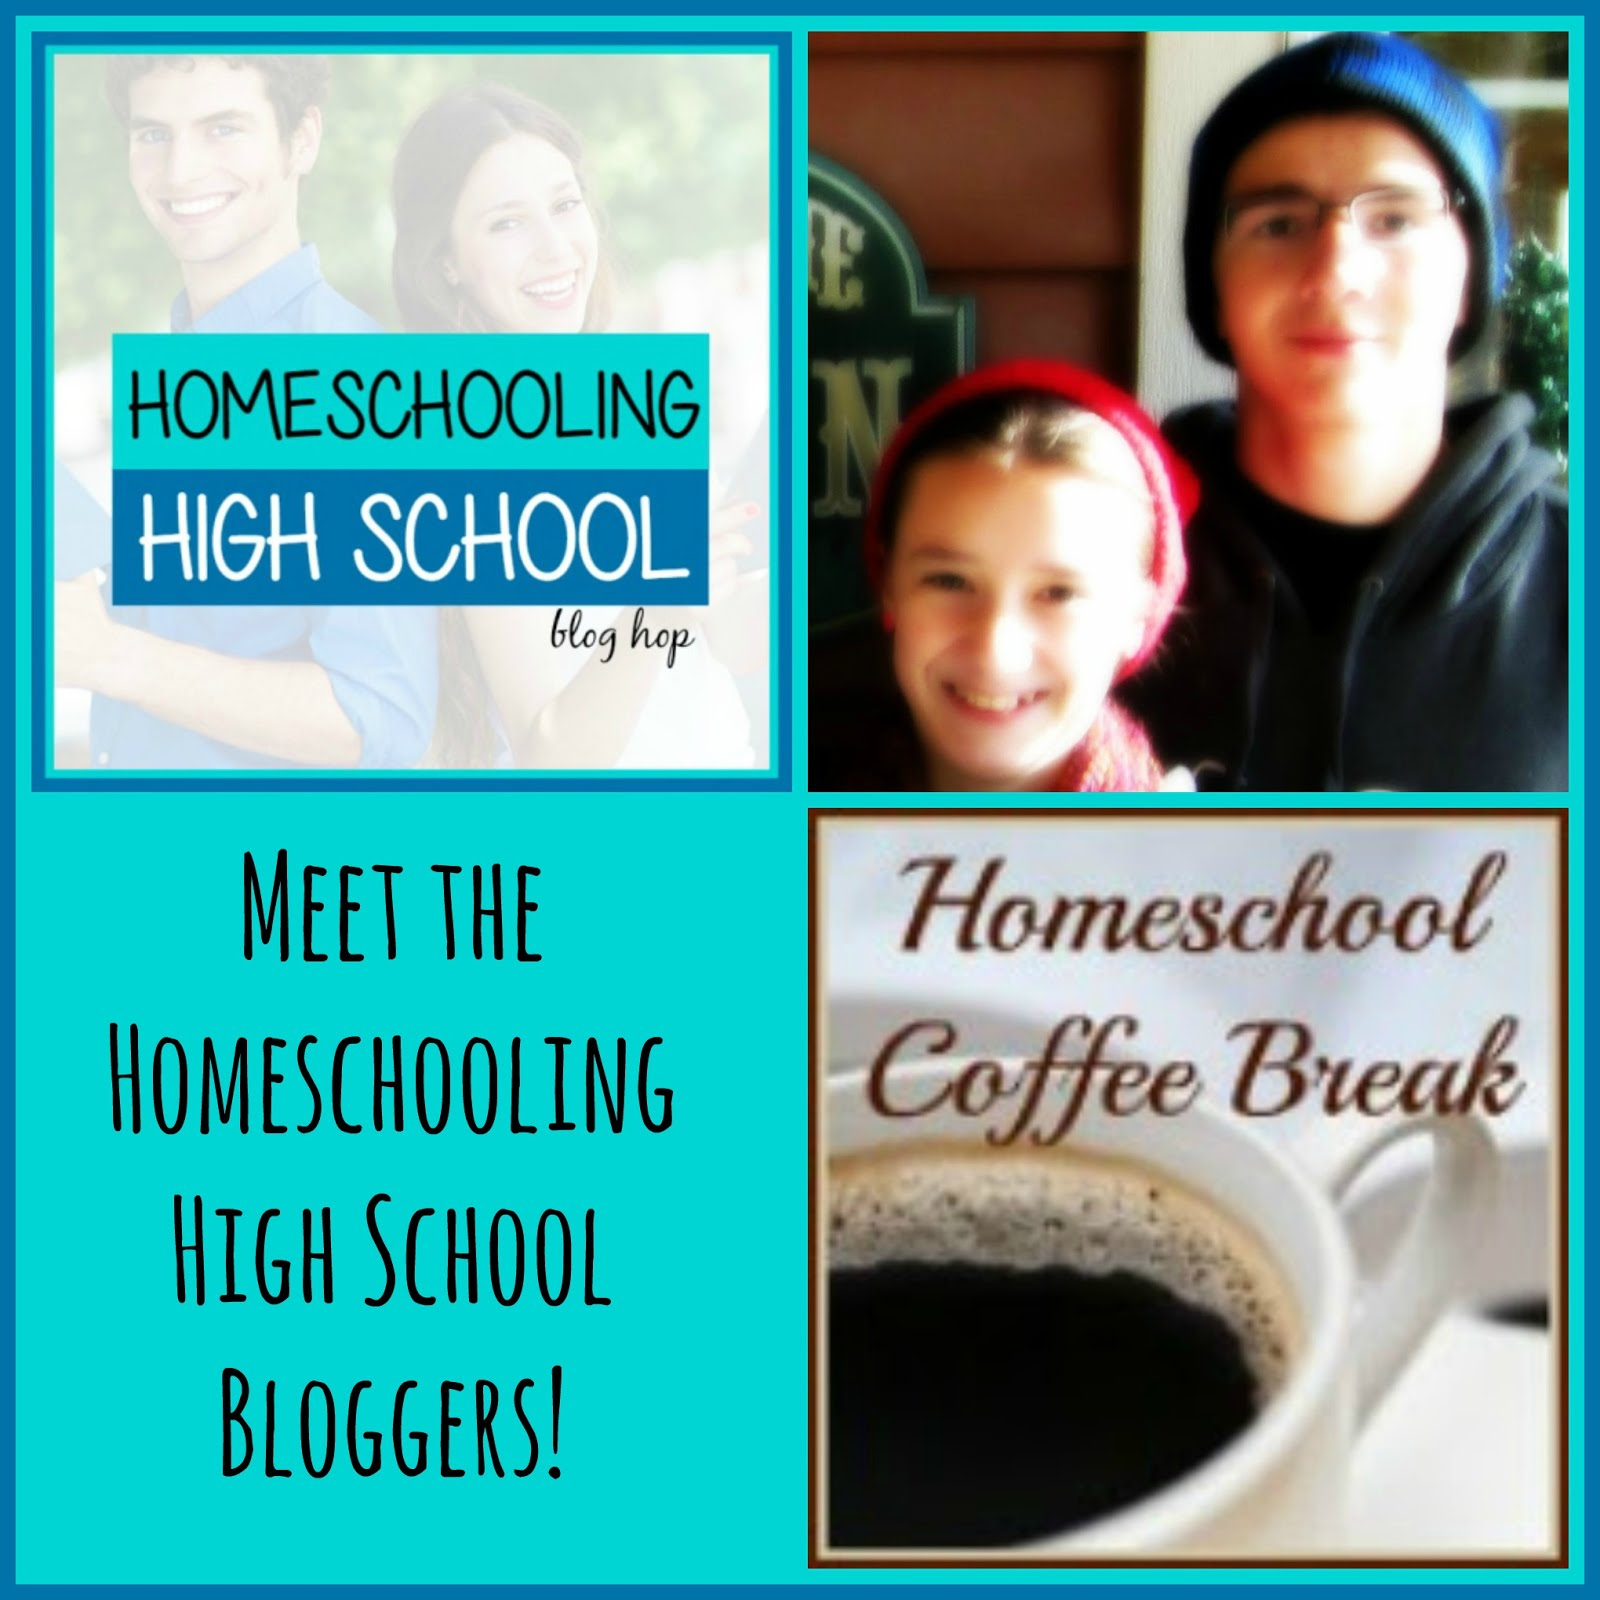 Homeschooling High School Blog Hop 2015